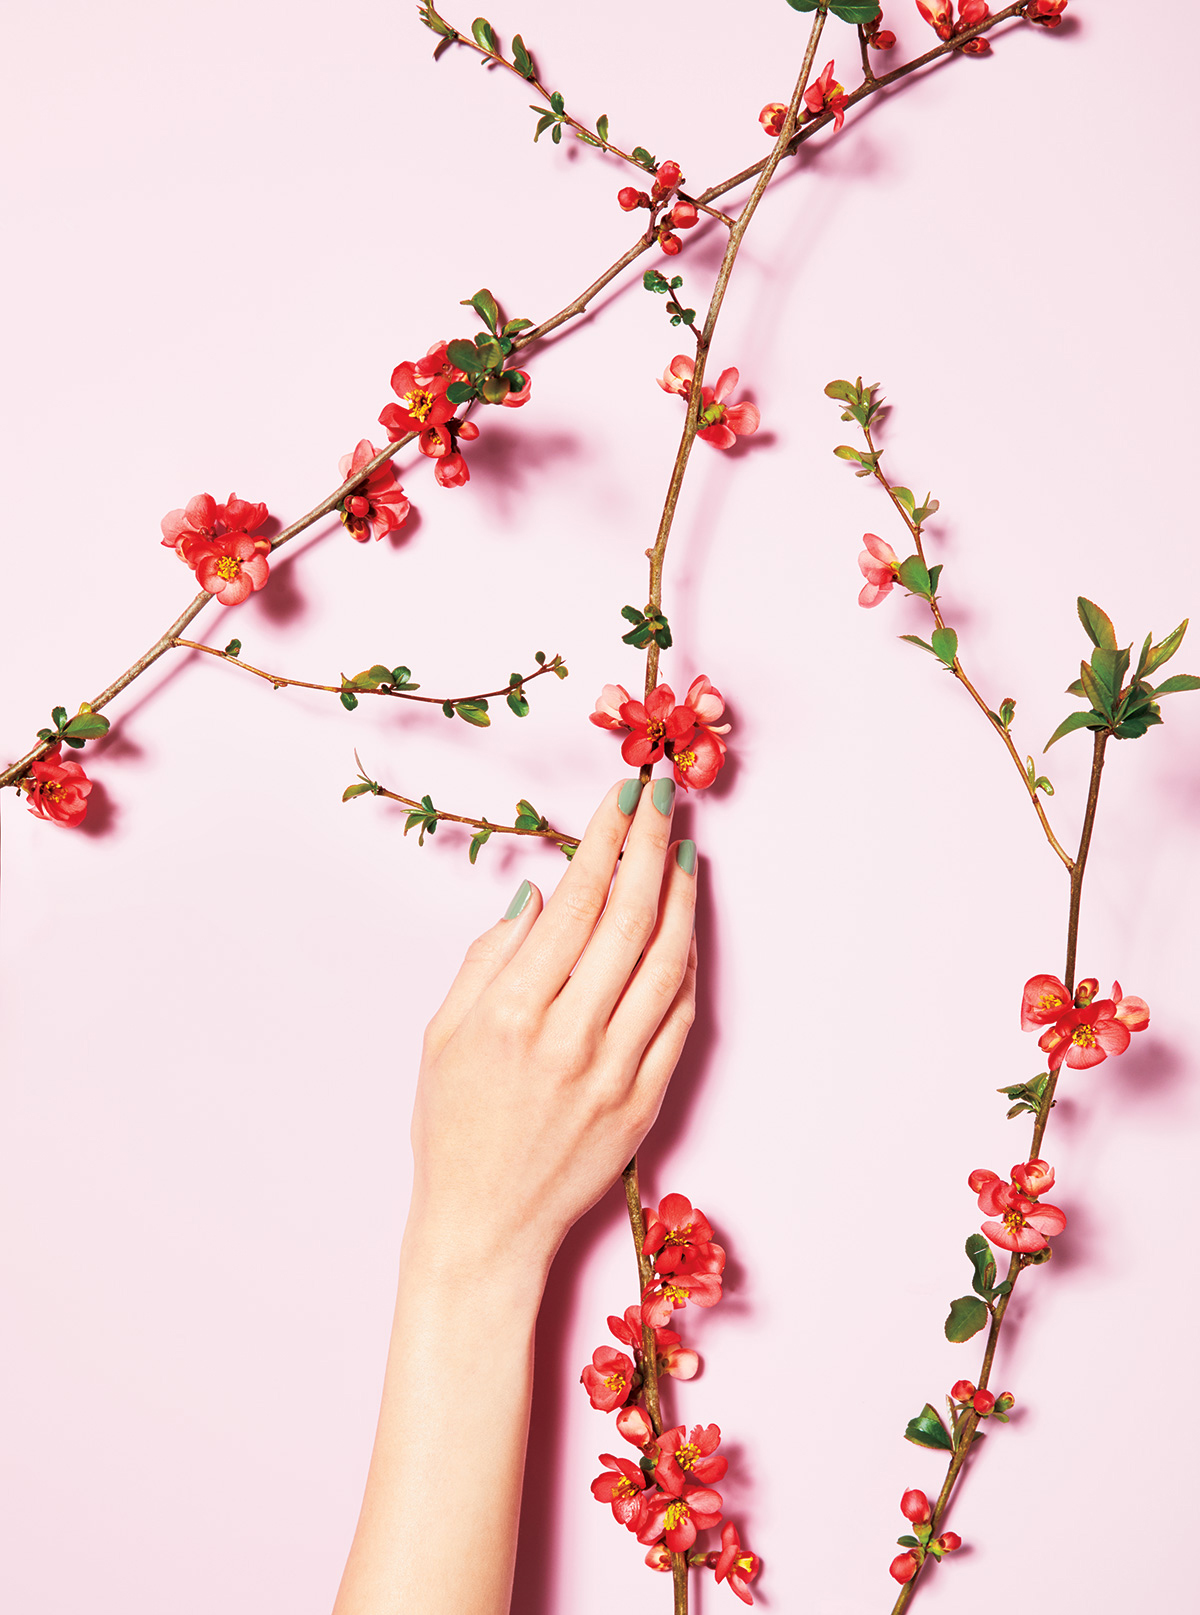 Manicured hand on light pink background